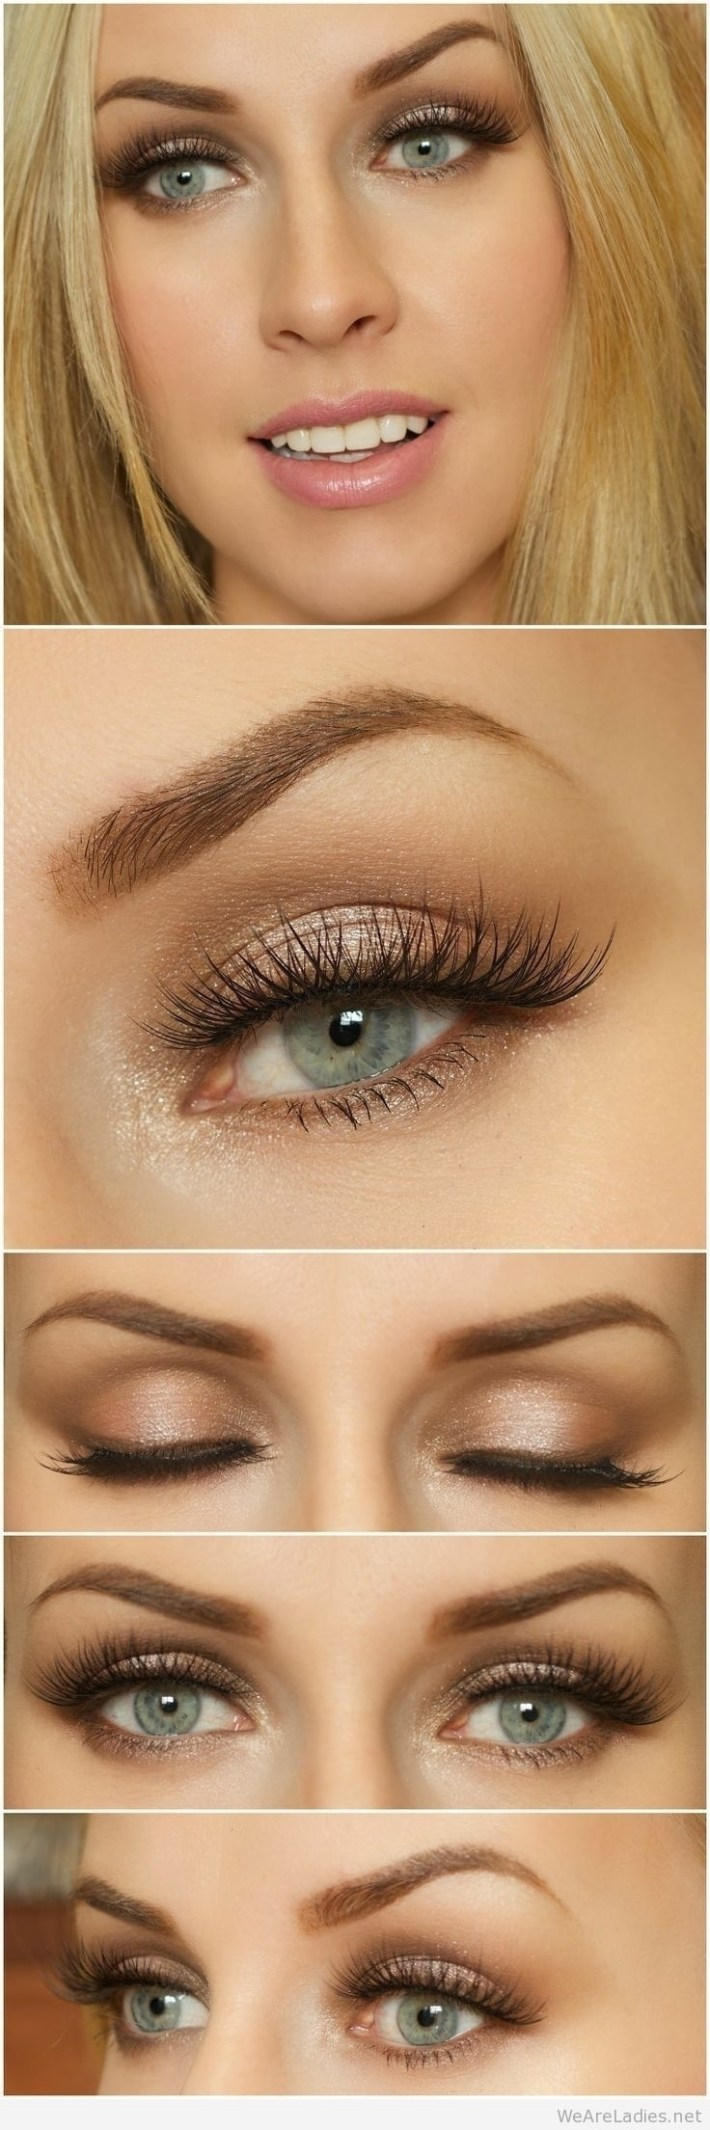 makeup tips for green eyes and pale skin - wavy haircut